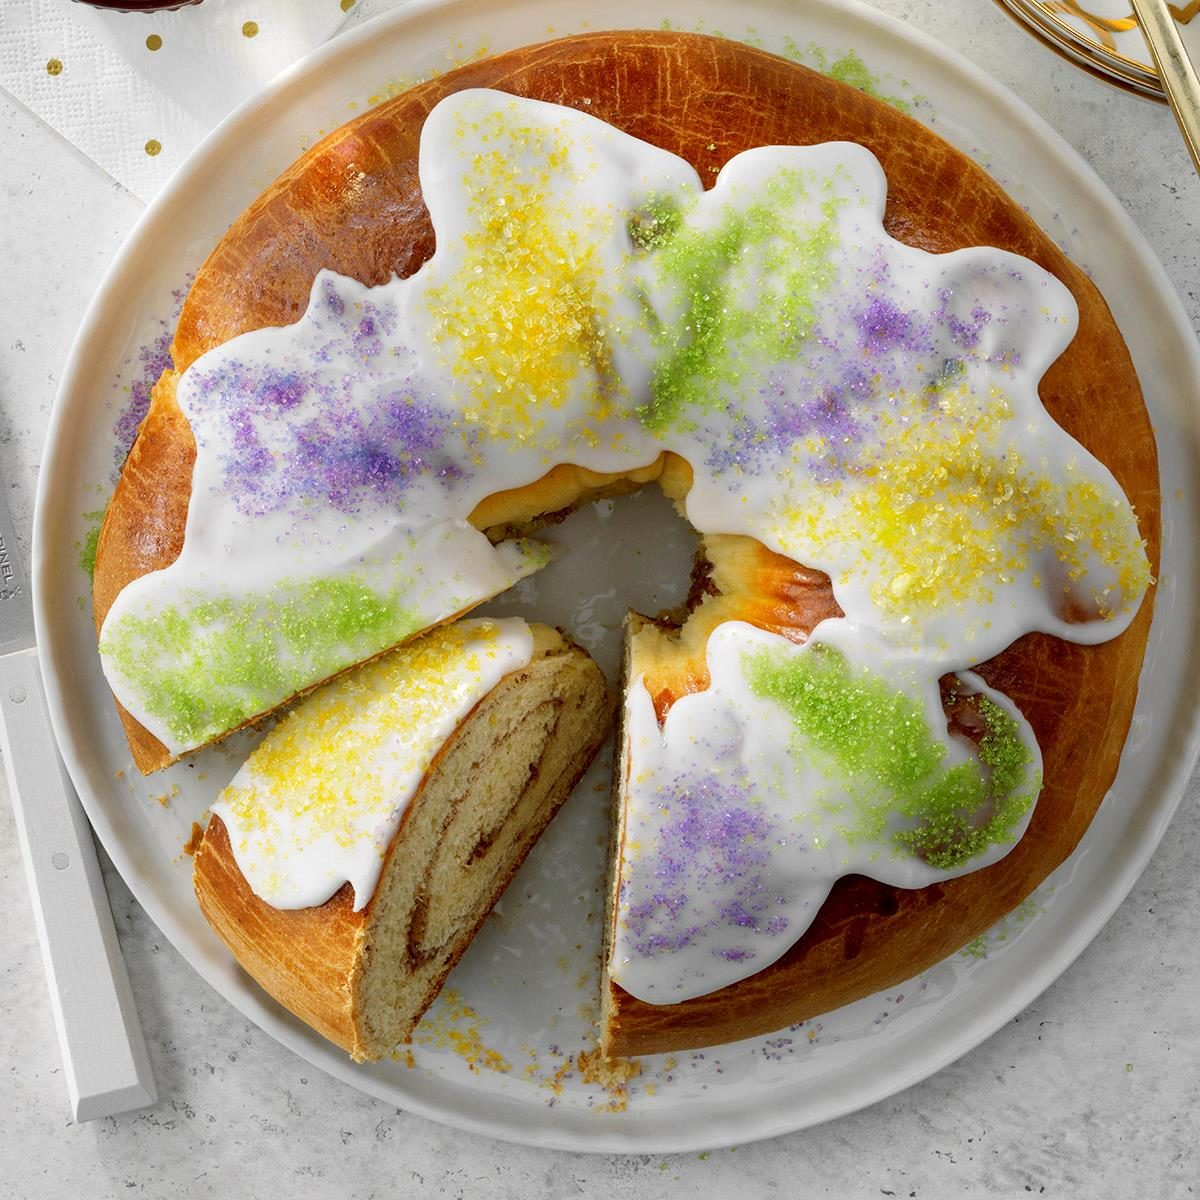 Astonishing Traditional New Orleans King Cake Recipe Taste Of Home Birthday Cards Printable Trancafe Filternl